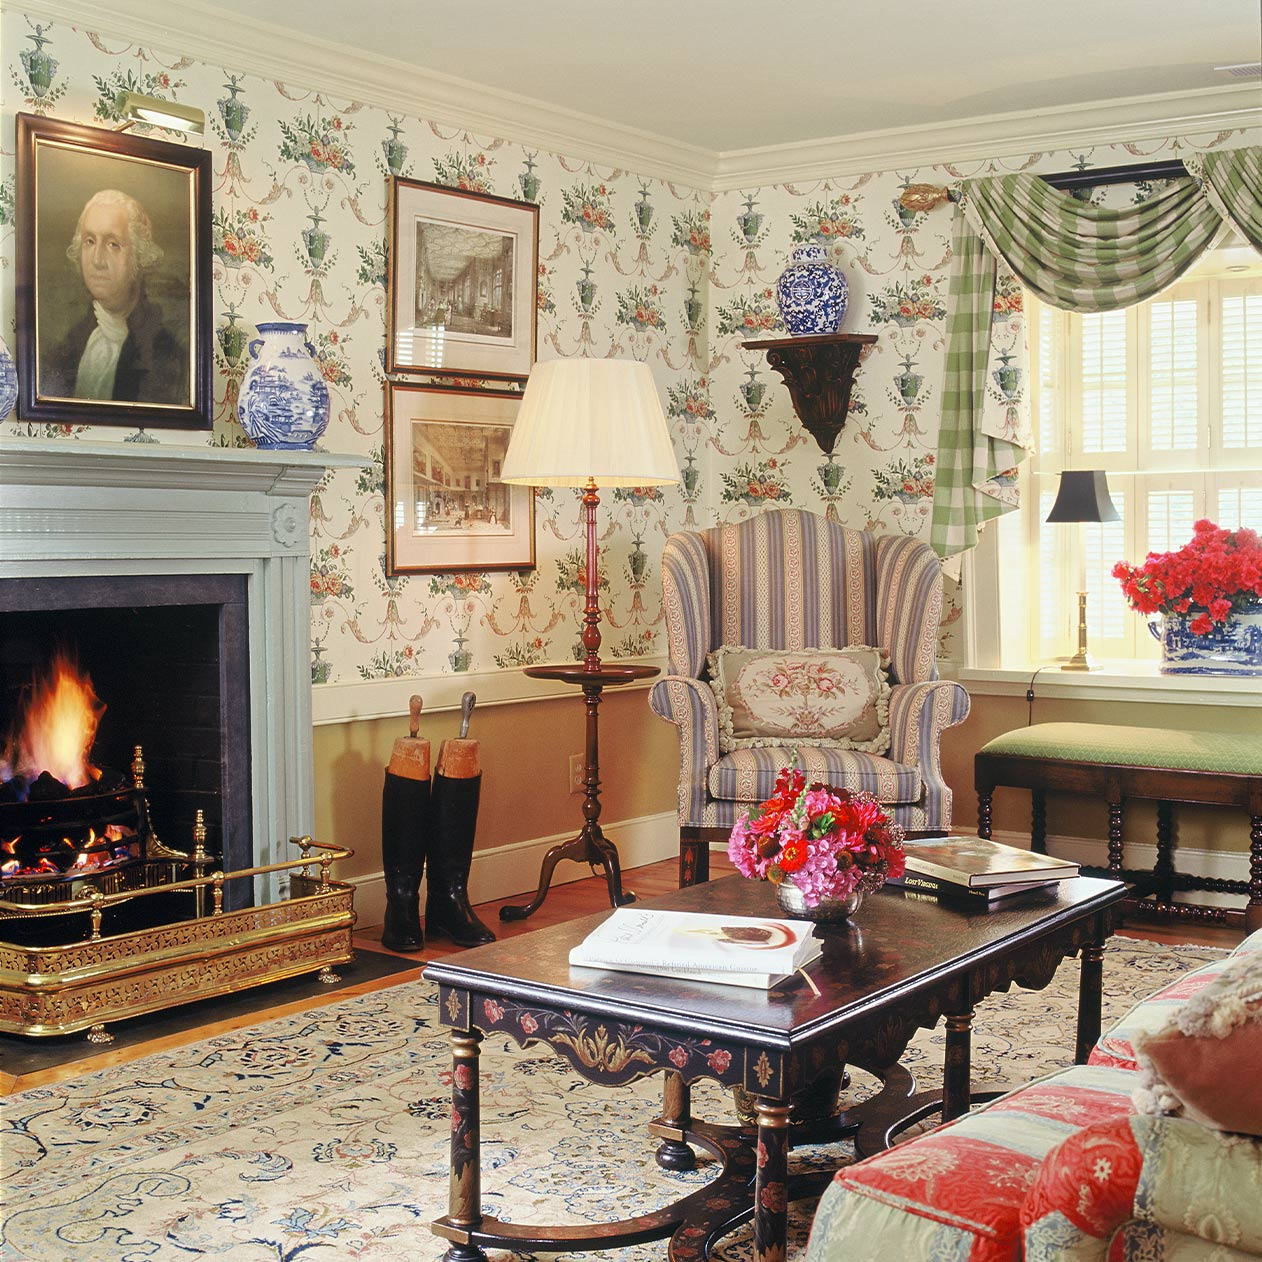 A vintage living room featuring a fireplace, antique furniture and patterned wall paper.